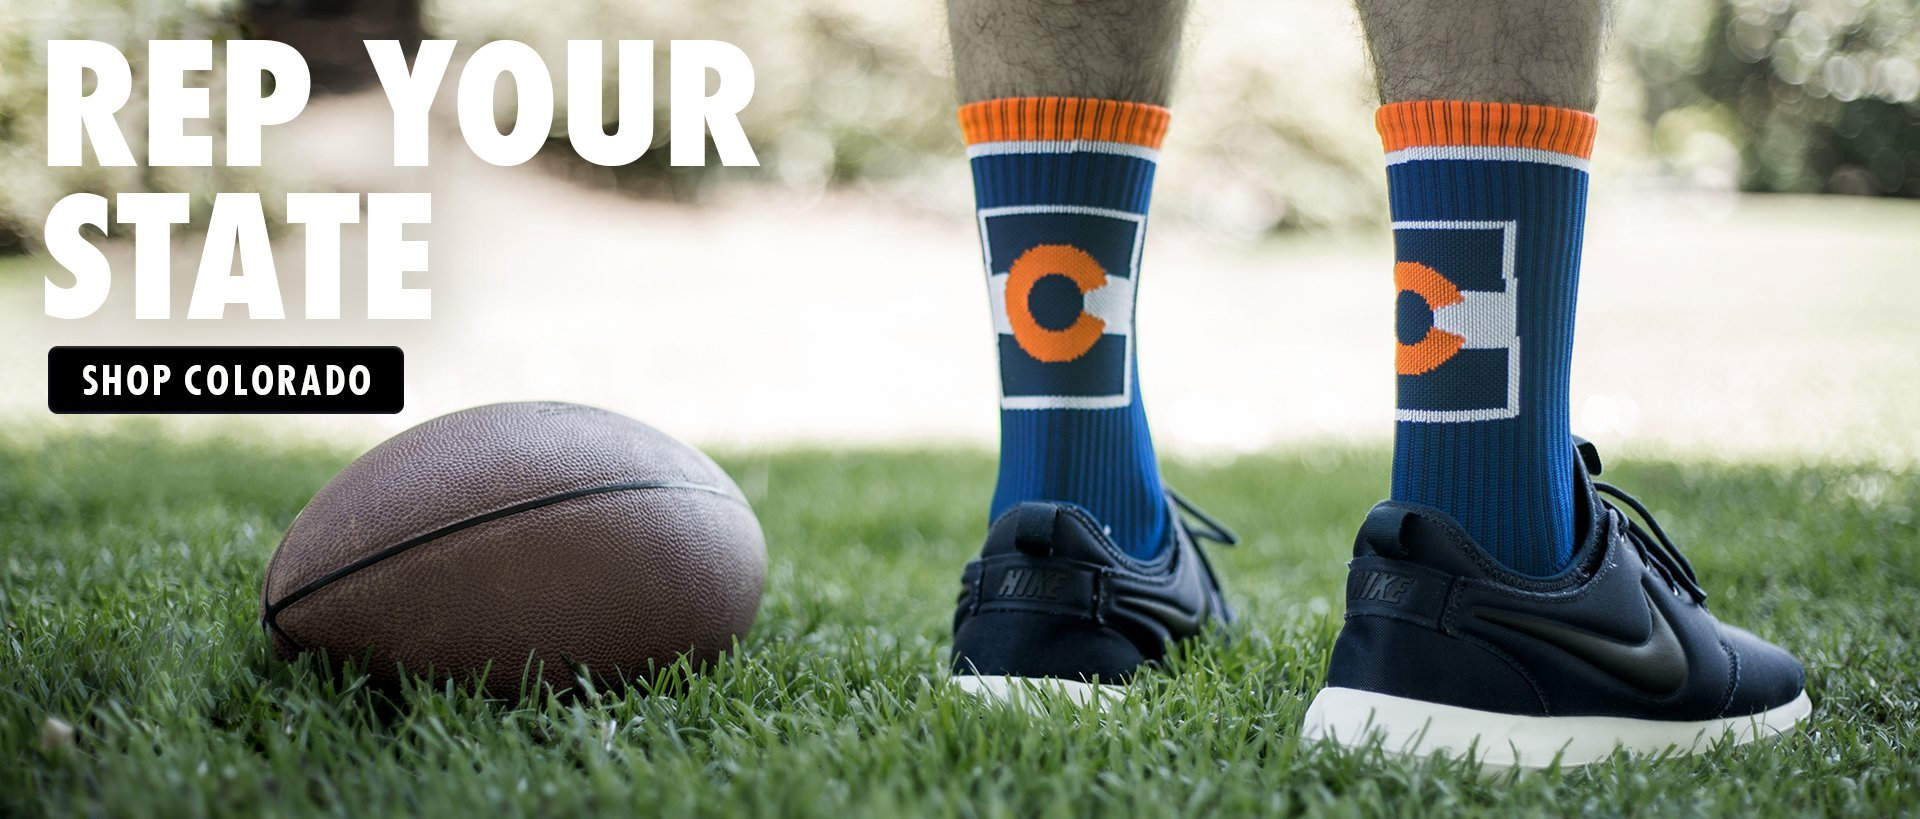 colorado socks, broncos socks, denver broncos socks, denver broncos, skyline socks, colorado stateline socks